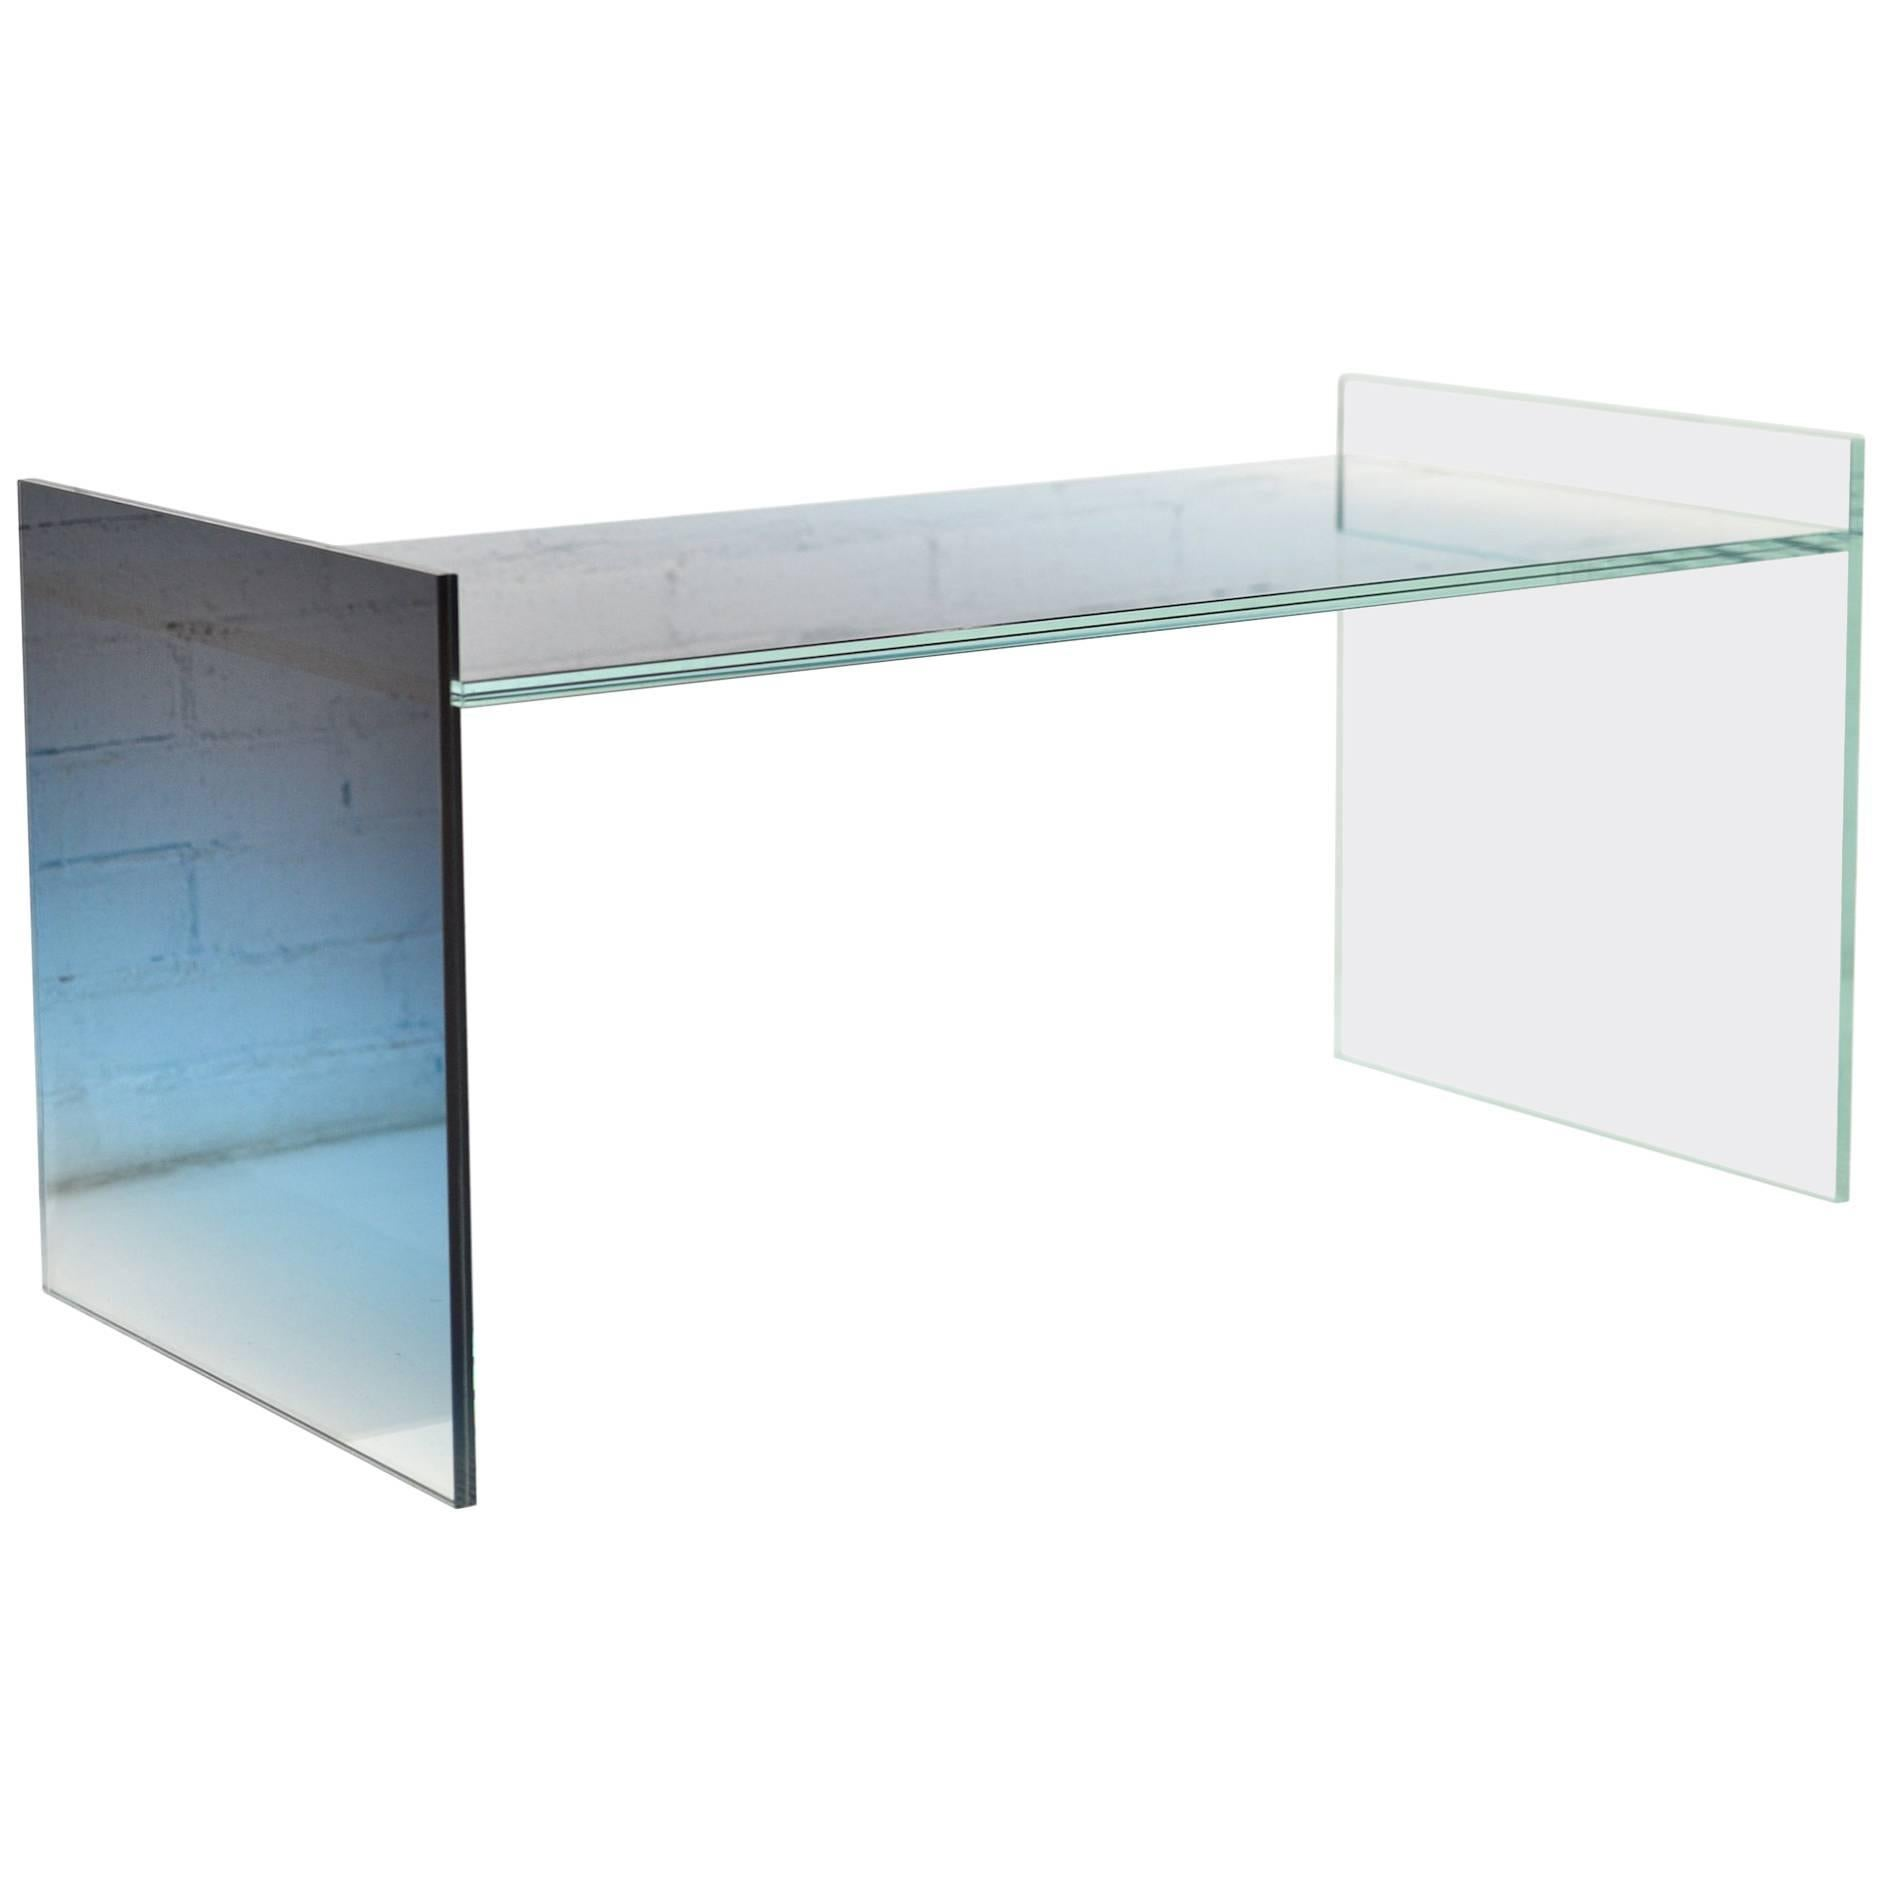 Ombre Glass Coffee End Table Low In Blue / Clear Glass By Germans Ermics